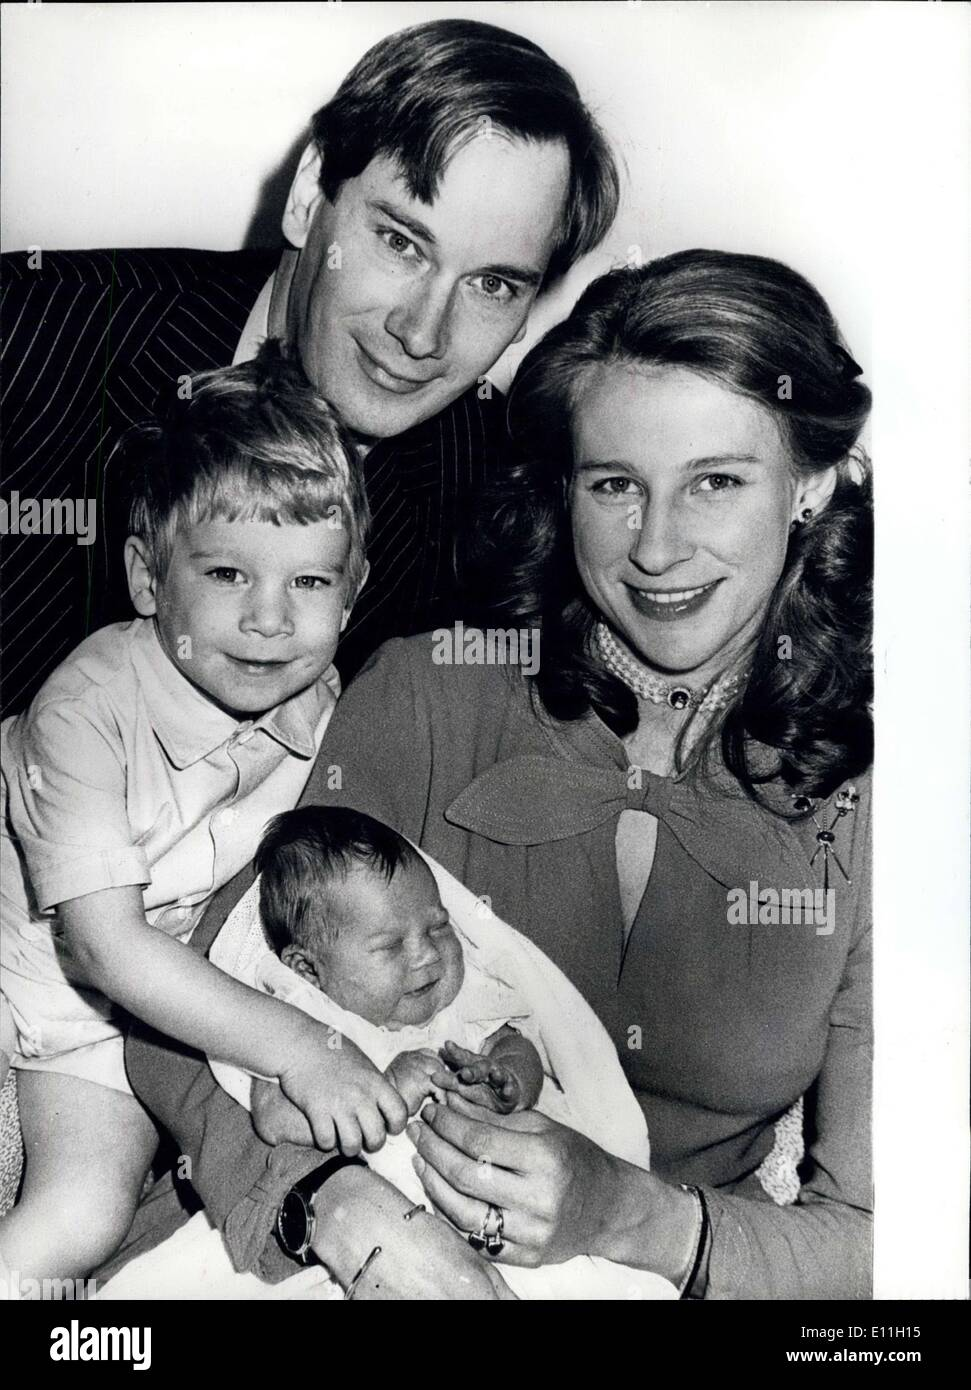 Dec. 21, 1977 - December 21st 1977 First pictures of the Duke and Duchess of Gloucester's new baby. The latest member of the Royal Family is Lady Davina Elizabeth Alice Benedikte Windsor, born four days after Princess Anne's son, is the daughter of the Duke and Duchess of Gloucester. Lady Davina weighed into the world at 7lb 11oz. Photo Shows: The Duke and Duchess of Gloucester posing for a family portrait at Kensington Palace with their children, the Earl of Ulster, 3, and four-week-old Lady Davina. - Stock Image